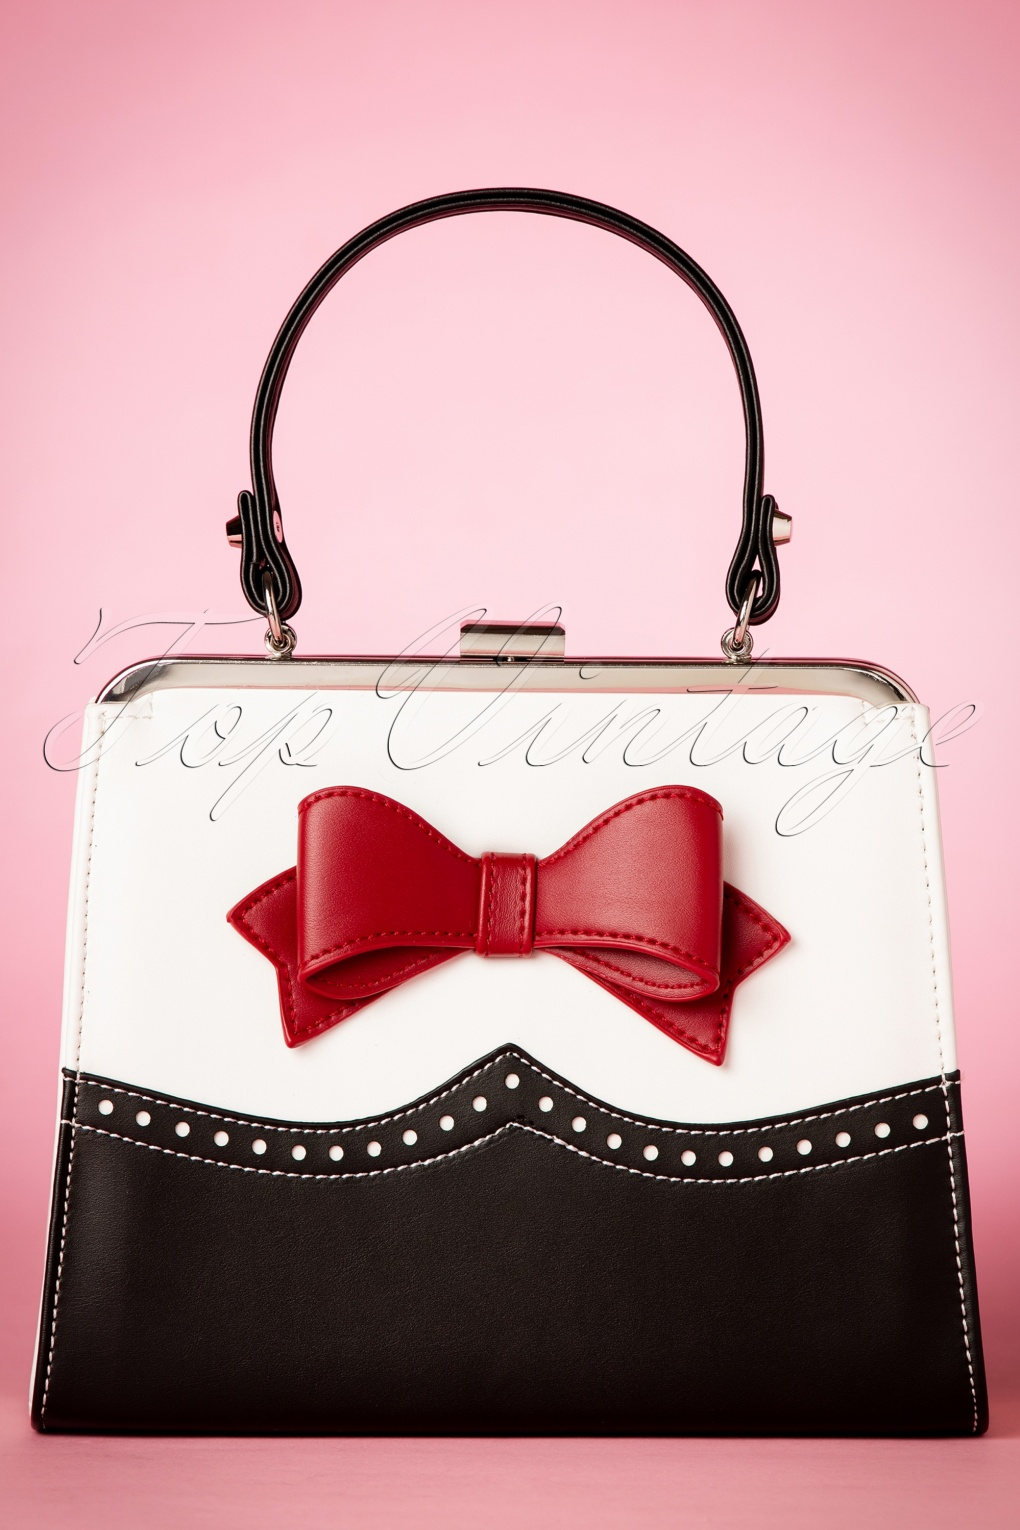 Retro Handbags, Purses, Wallets, Bags 50s Inez Handbag in Black and White £56.42 AT vintagedancer.com